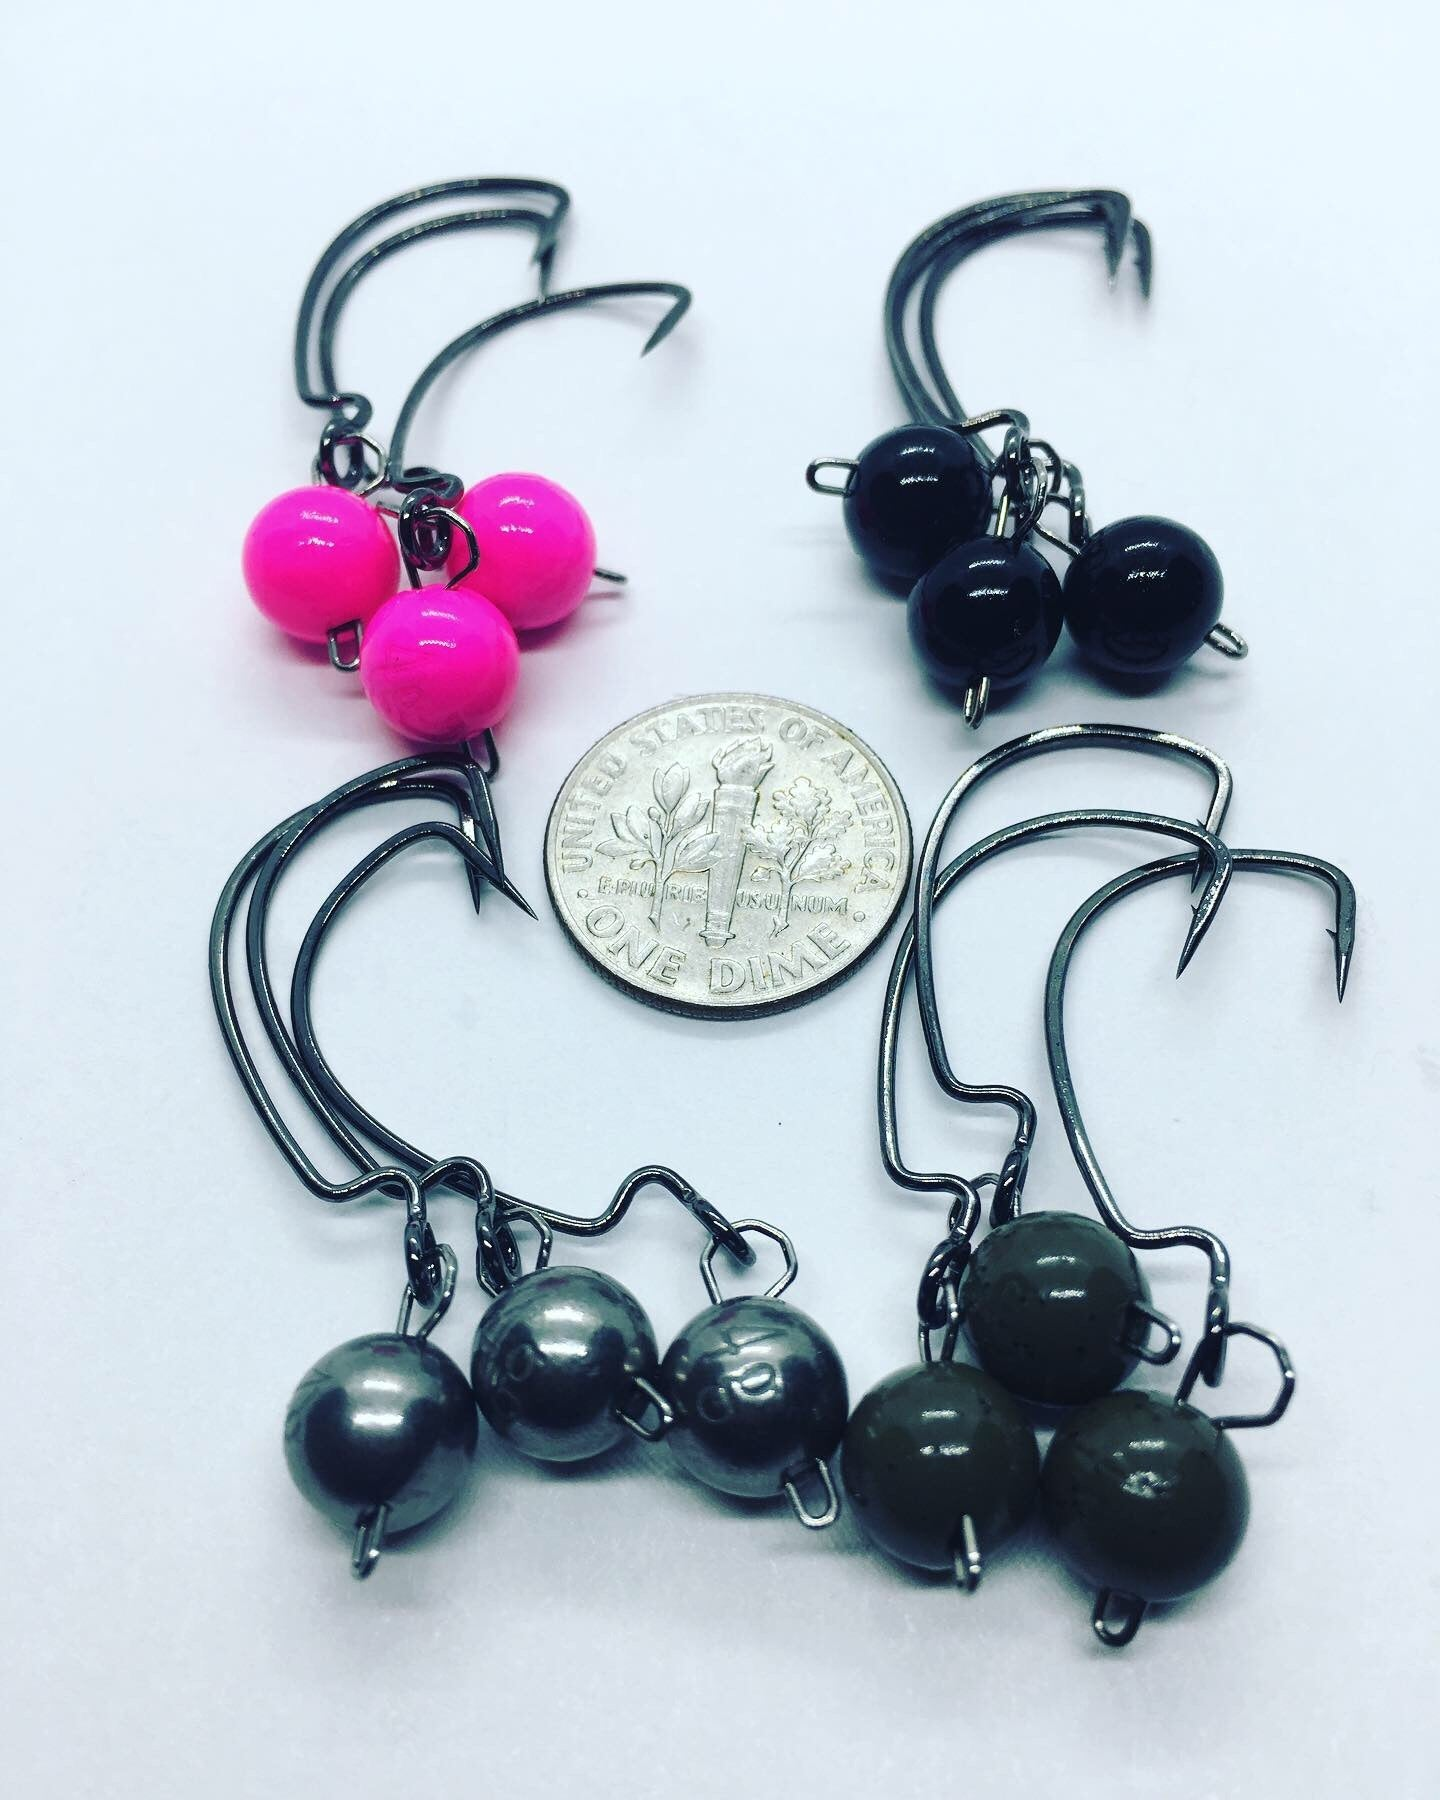 Tungsten Wobble Heads - 4 Gram/Gamakatsu Worm 330 size 4